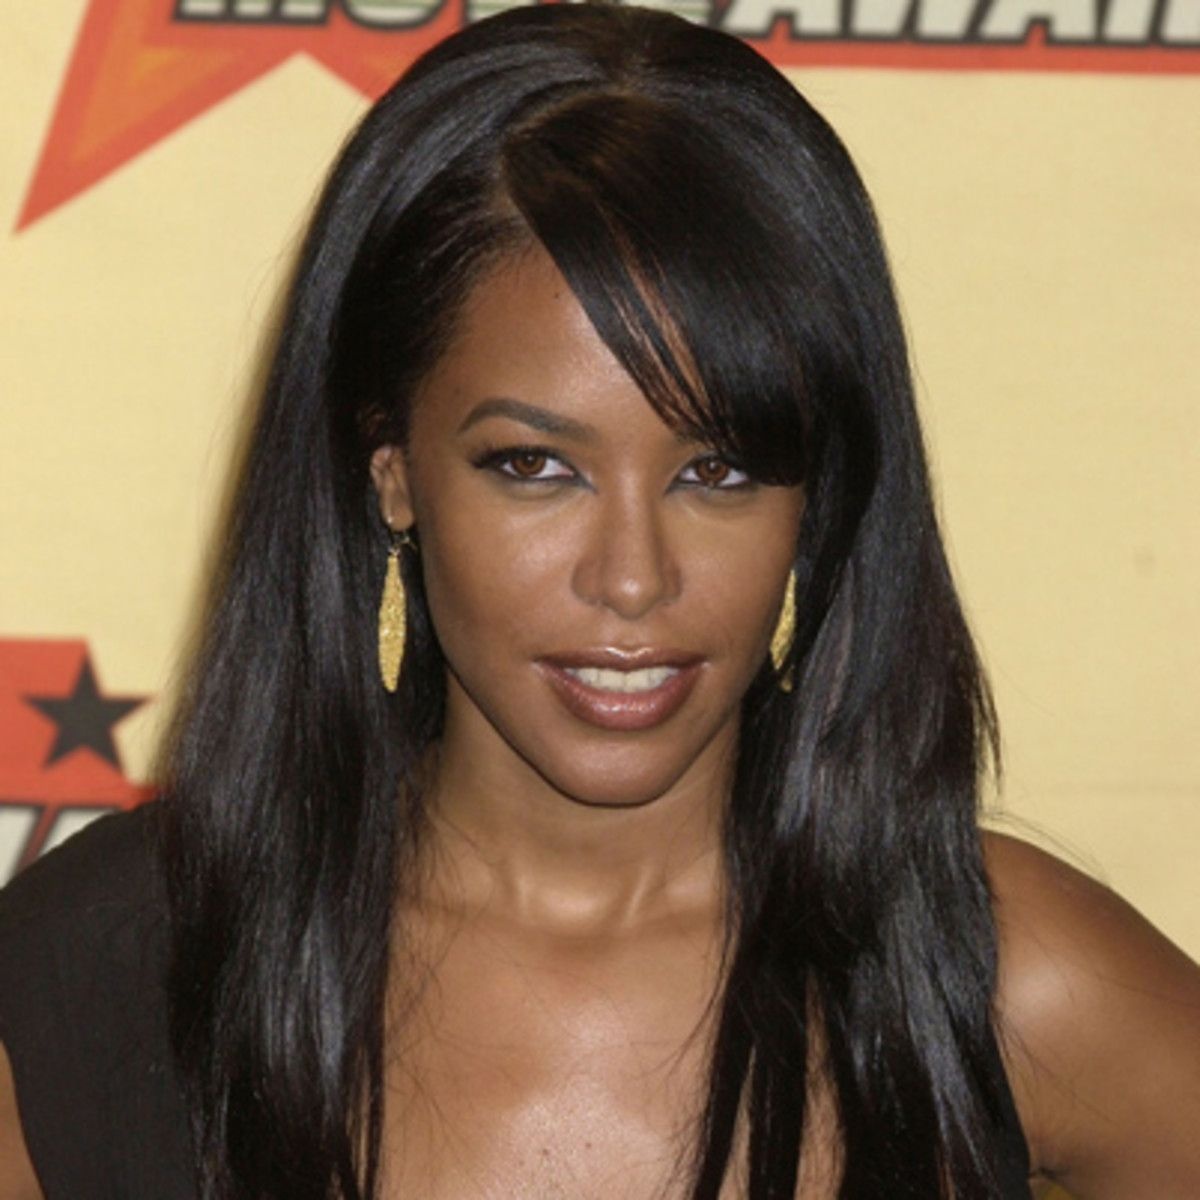 August 25, 2001 Aaliyah a famous singer died in a plane